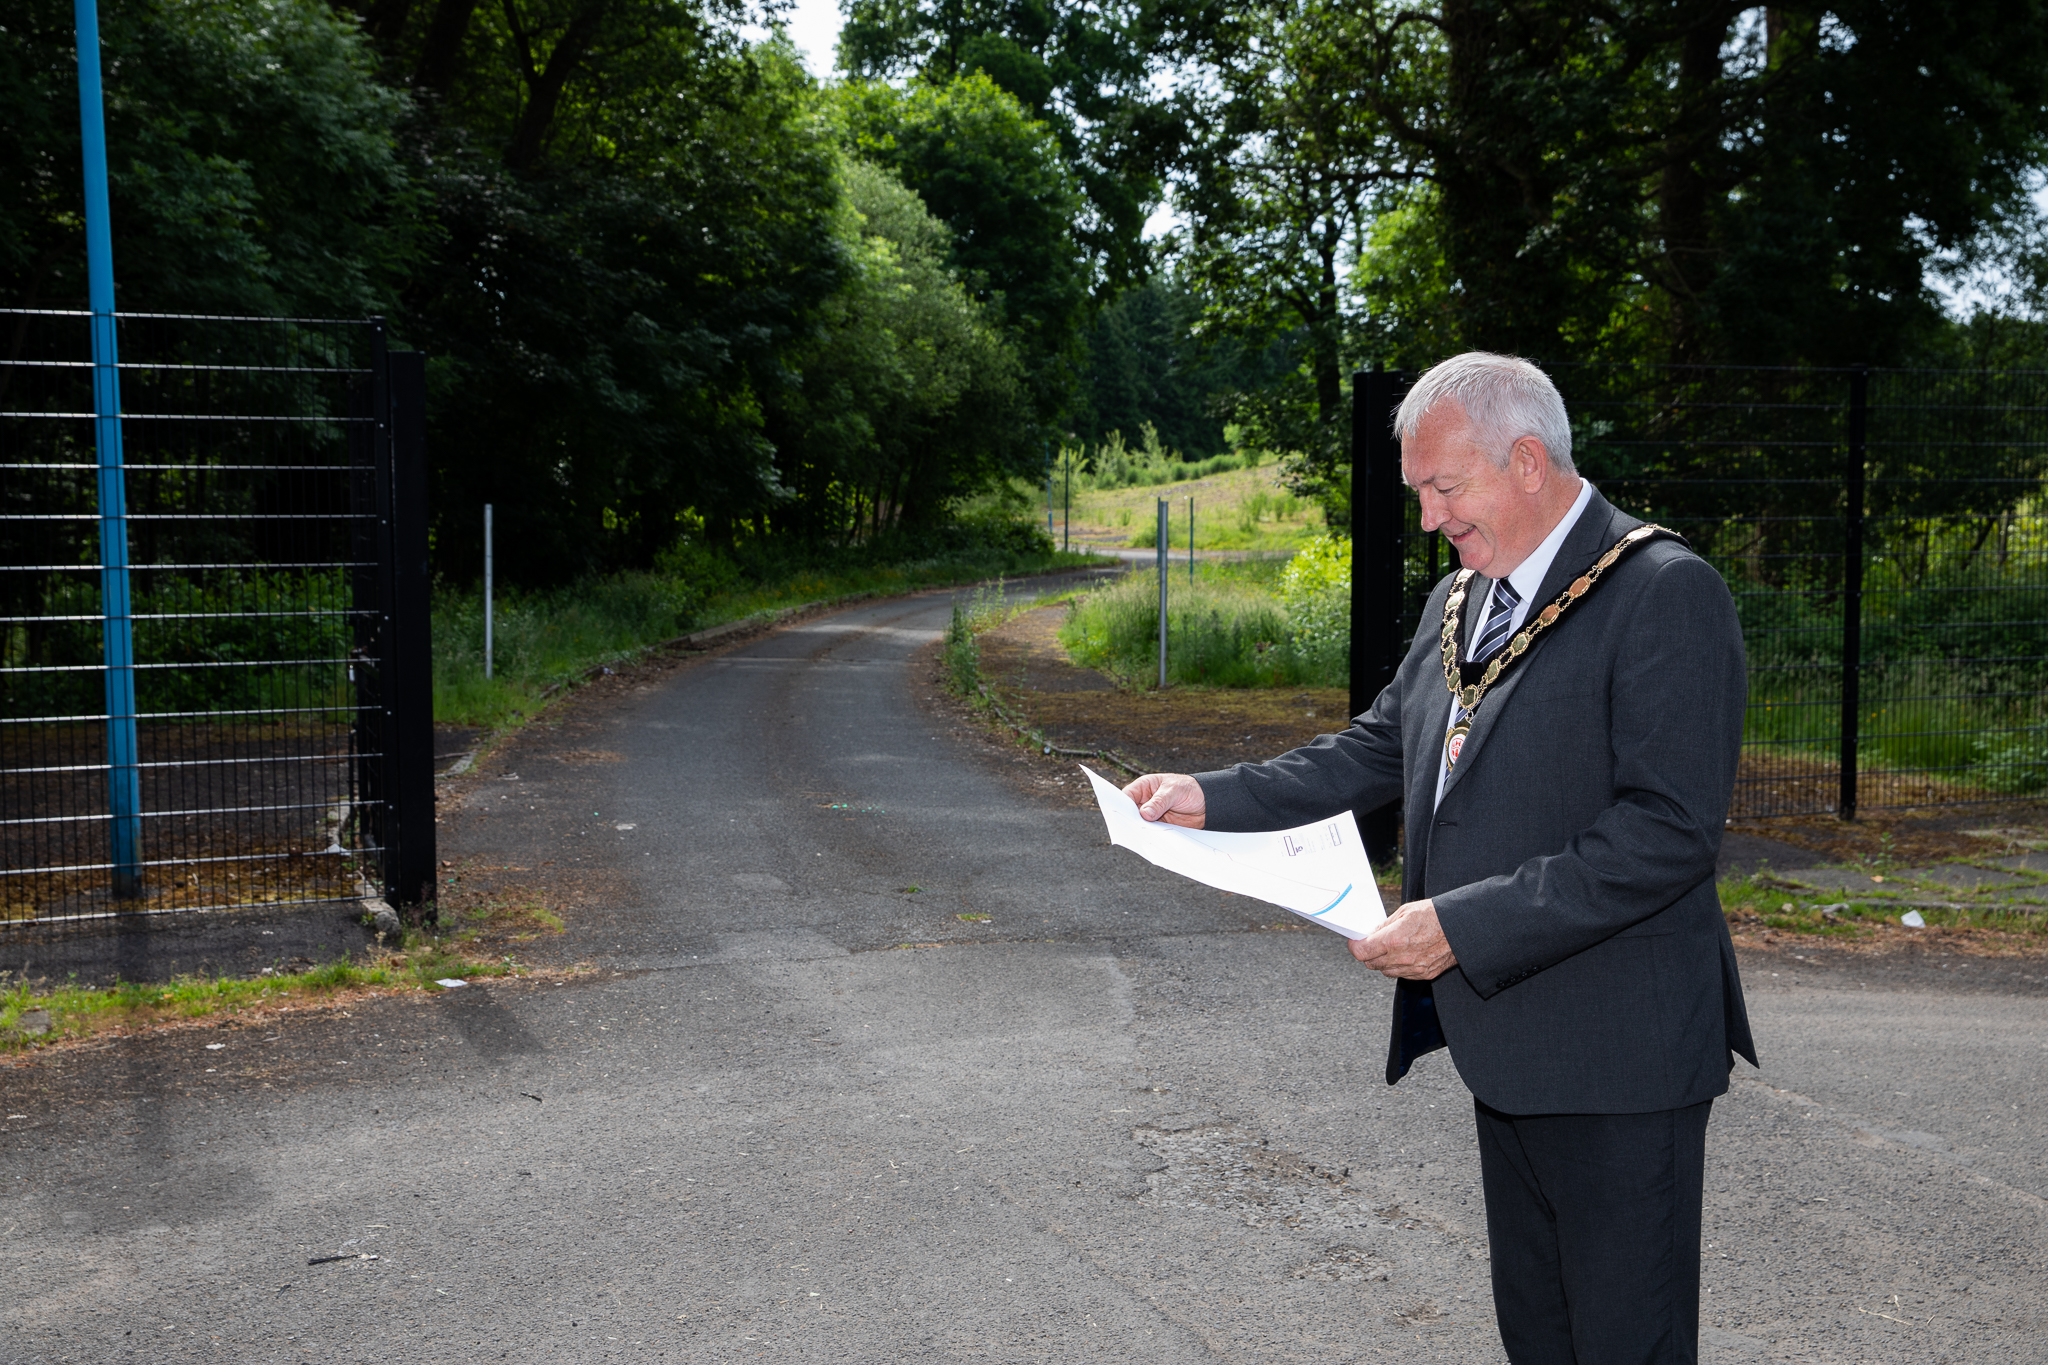 Chair of Mid Ulster District Council, Councillor Sean McPeake, at the site of the proposed new business park development in Maghera.